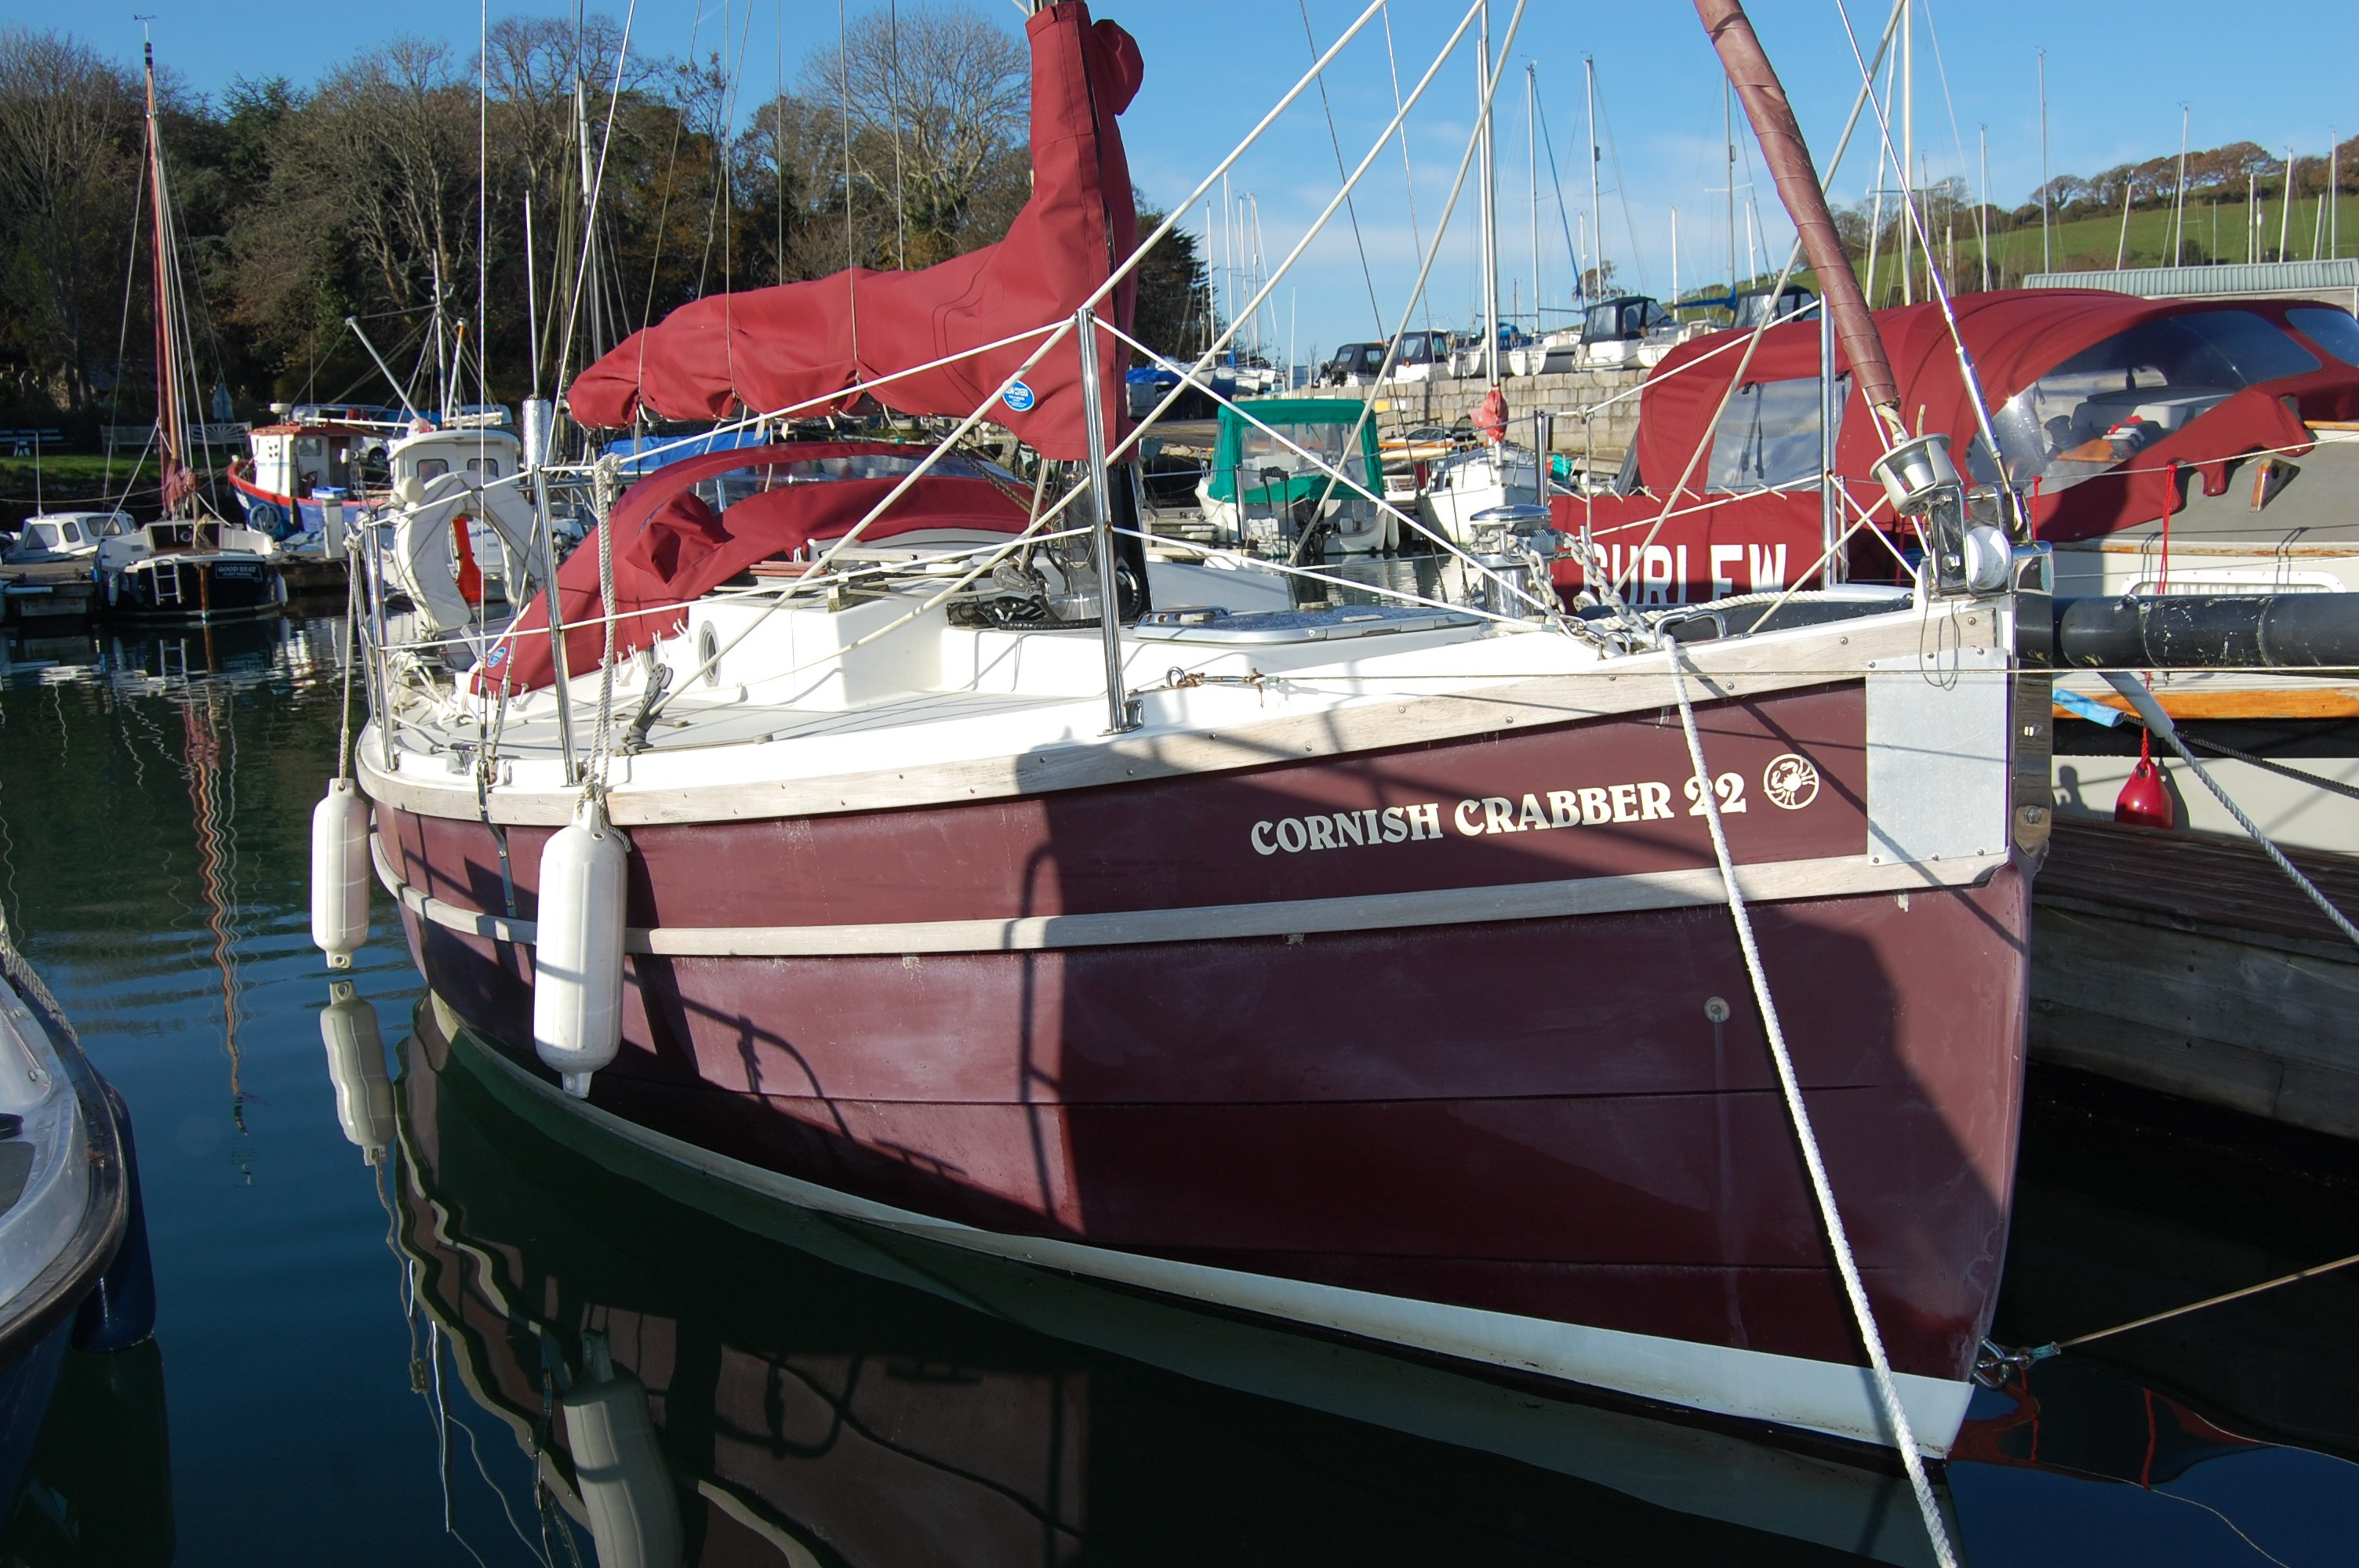 Cornish Crabber 22 Cornish Crabber 22